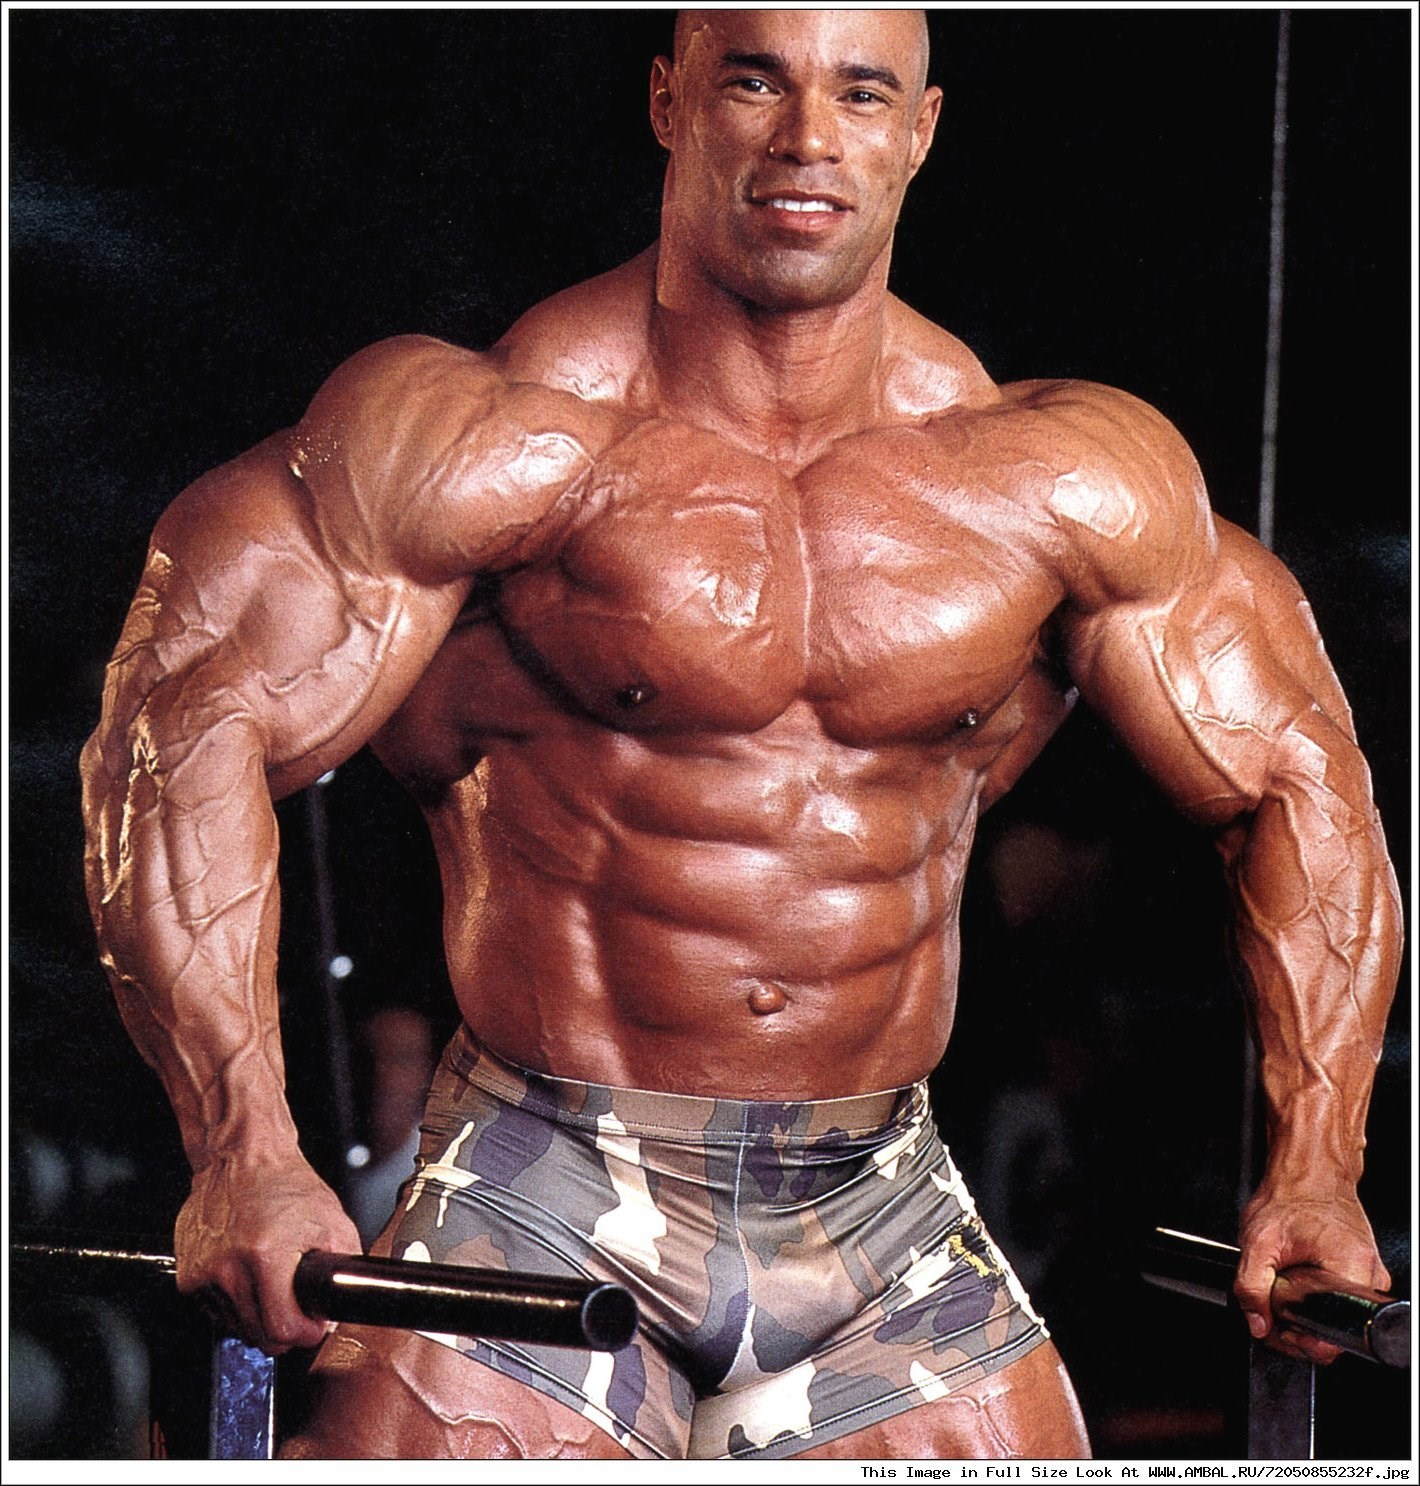 Jay Cutler Hd Wallpaper Kevin Levrone Known People Famous People News And